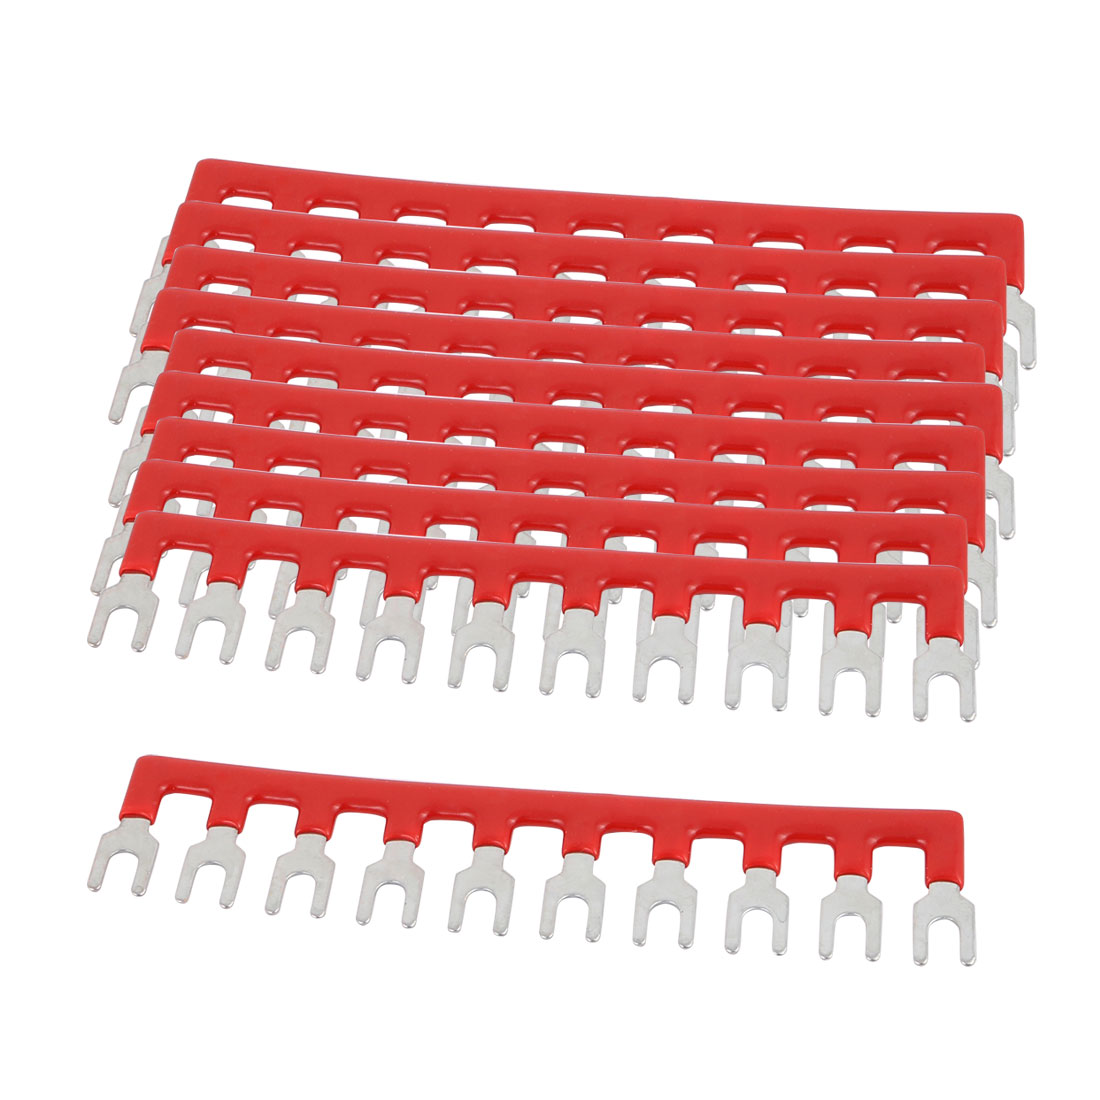 10PCS 600V 25A 6mm Pitch 10 Position PCB Terminal Block Strip Barrier Red